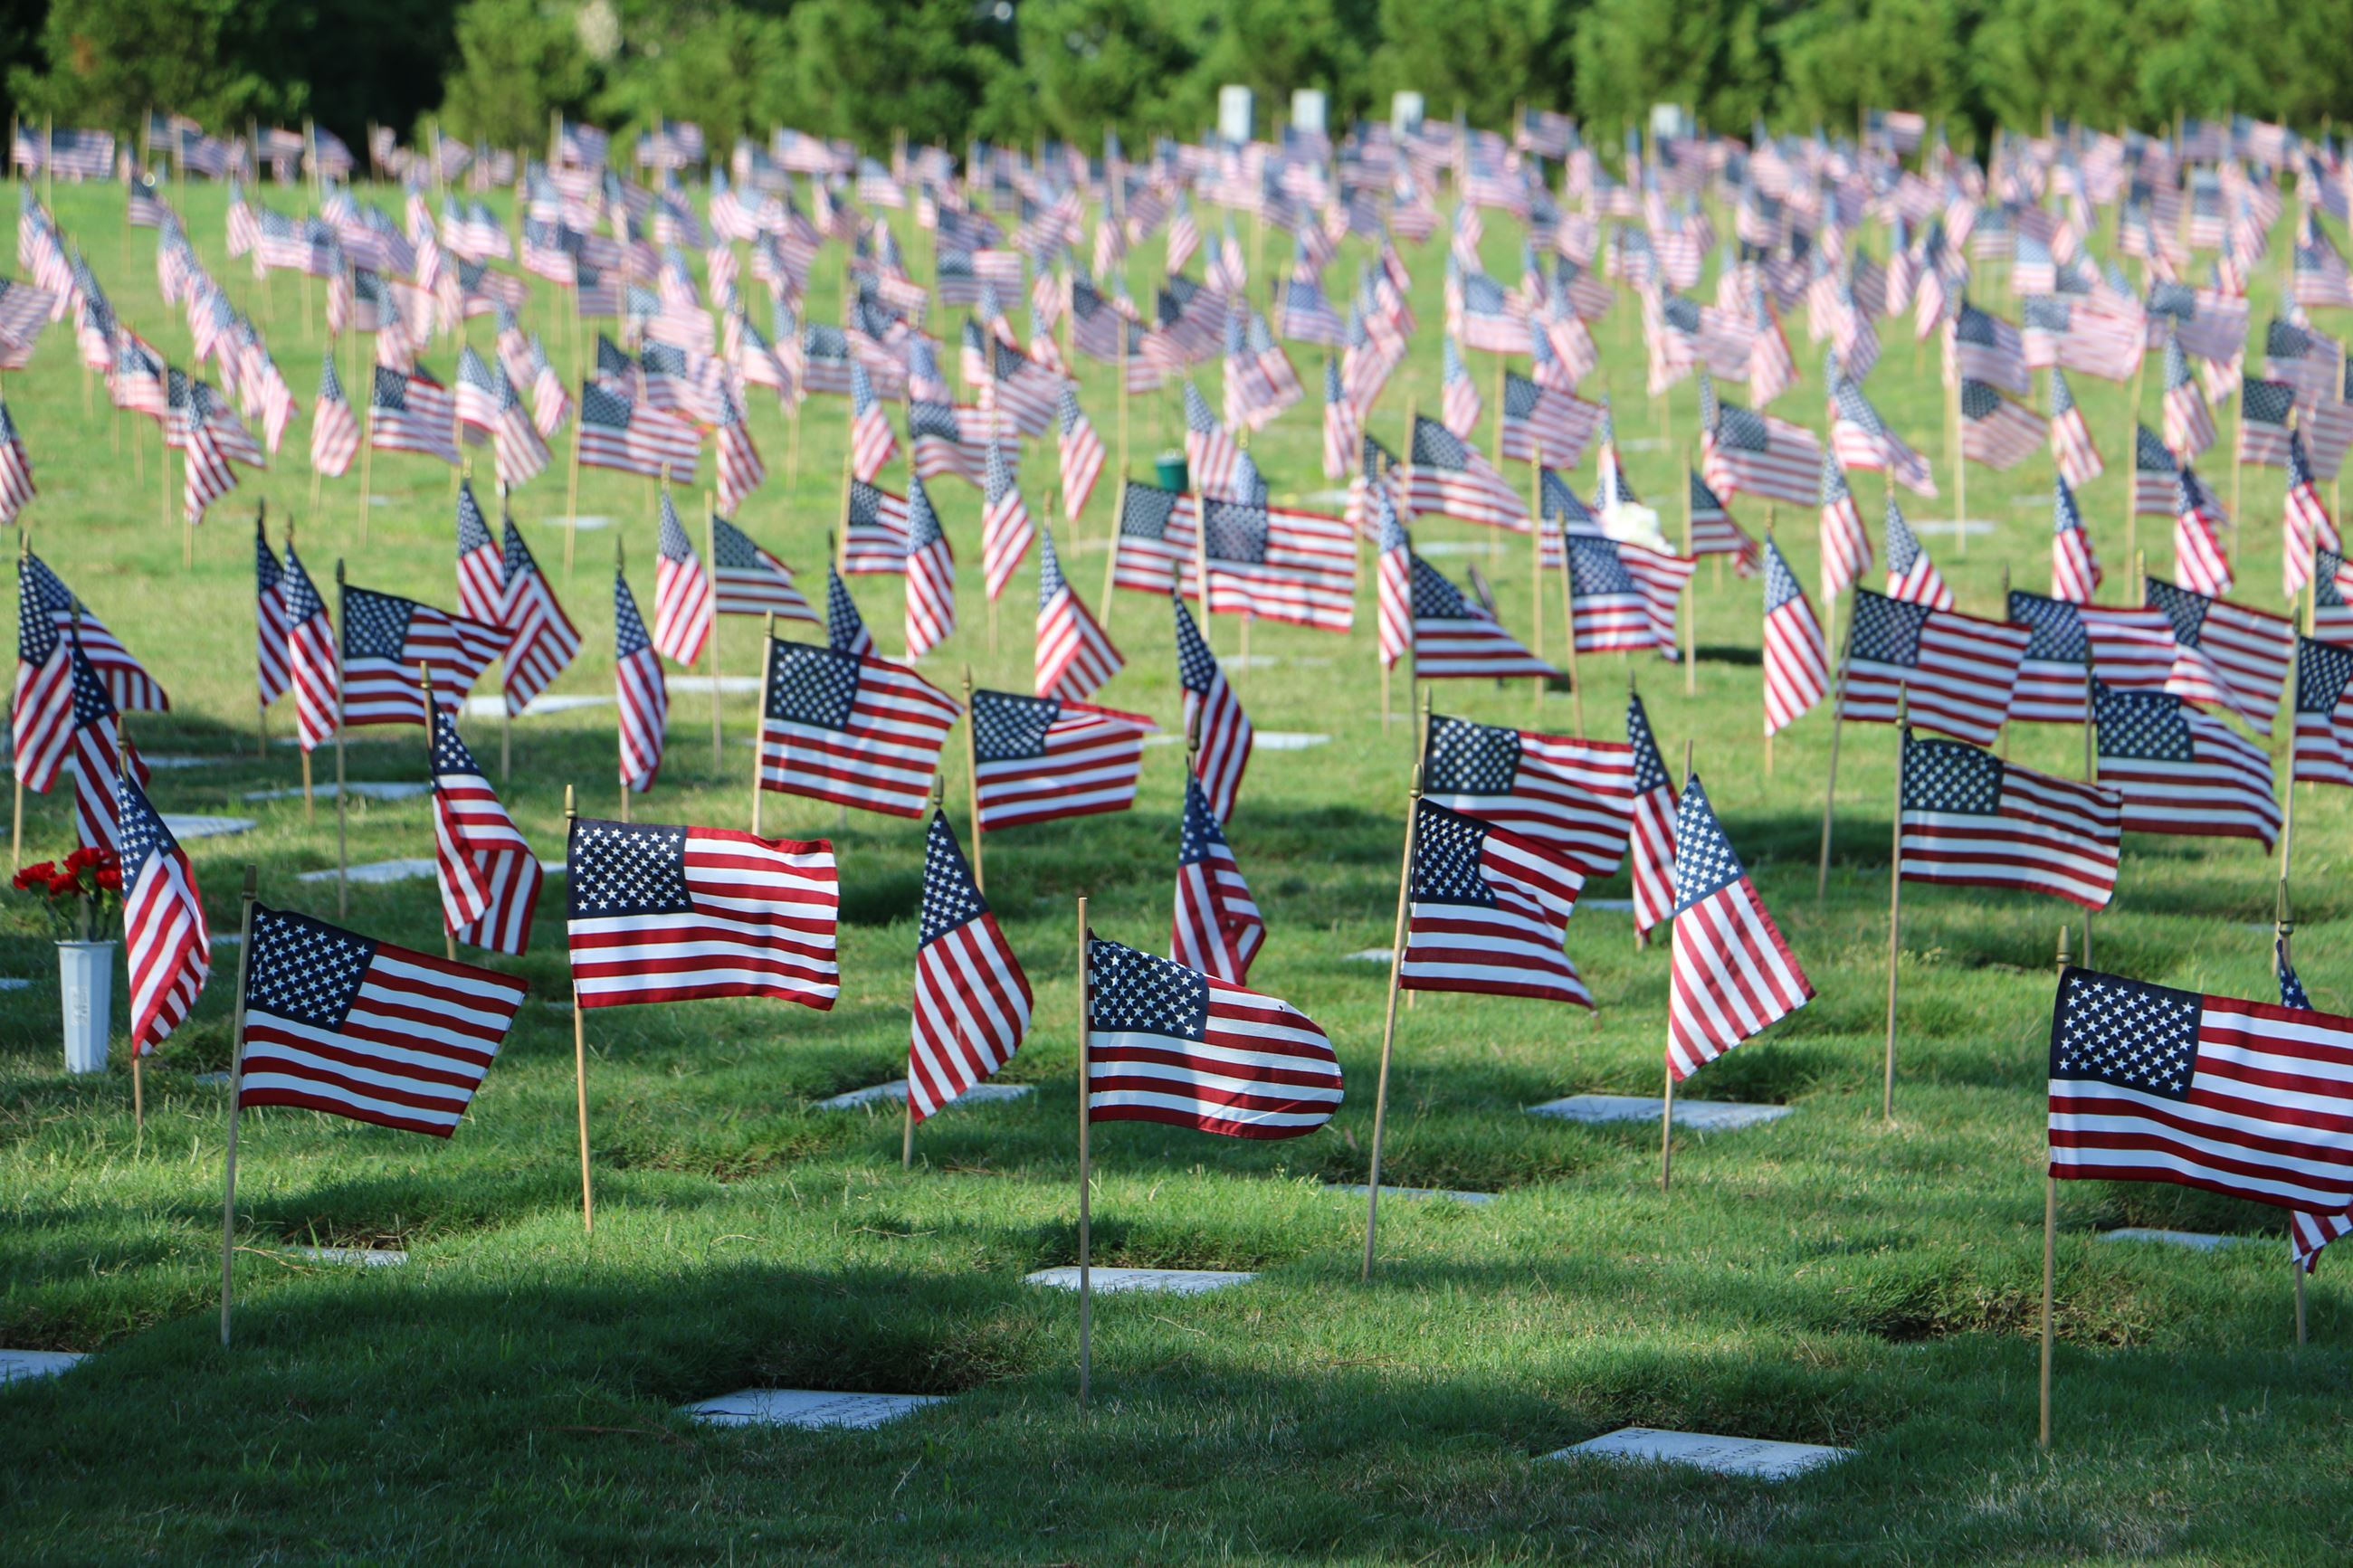 Memorial Day at the Veterans Cemetery